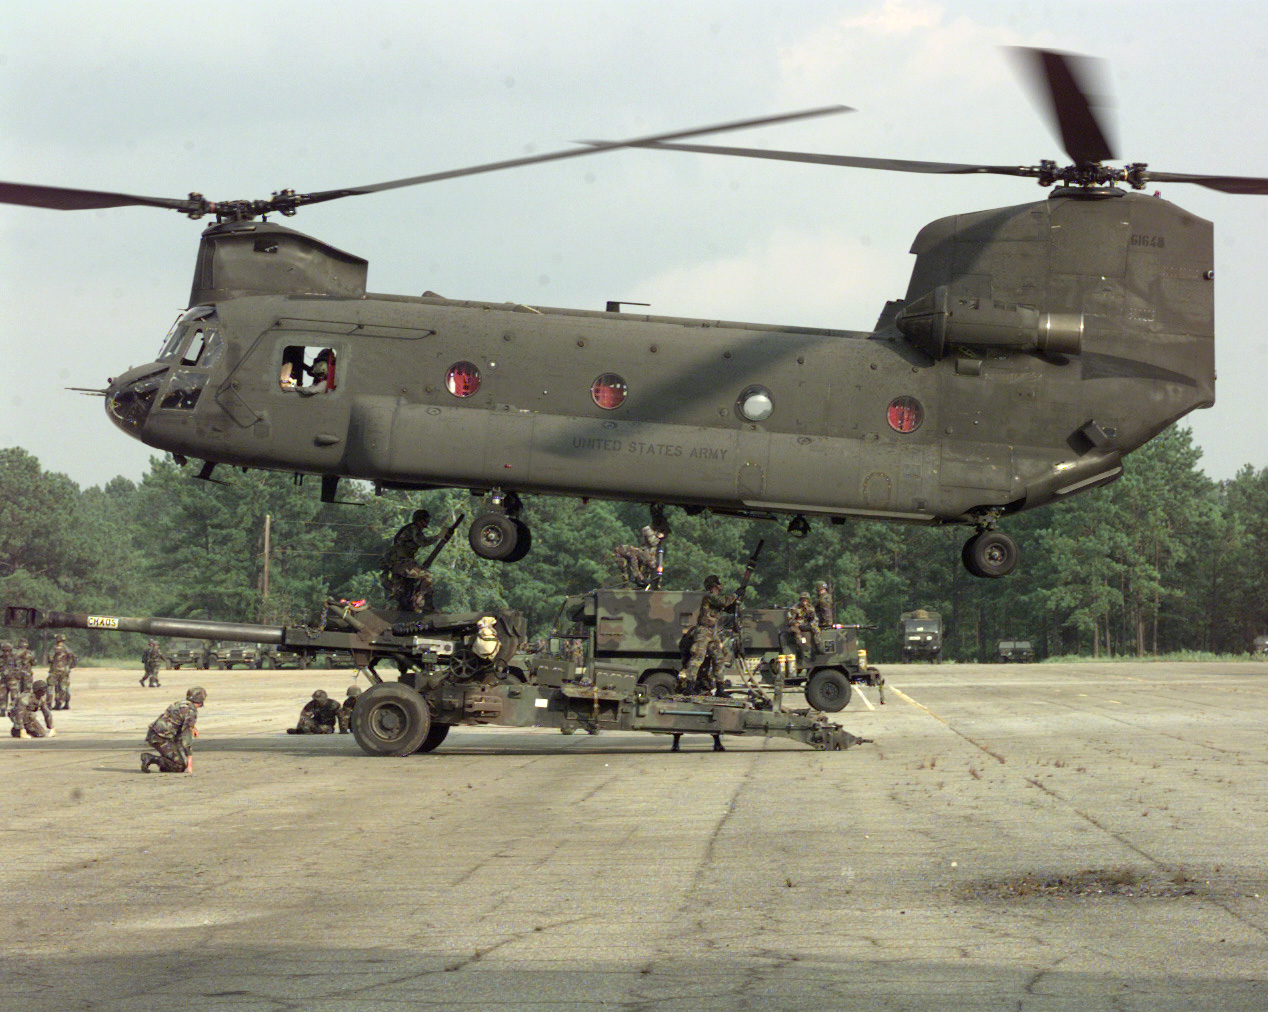 CH-47 Chinook heavy lift helicopter